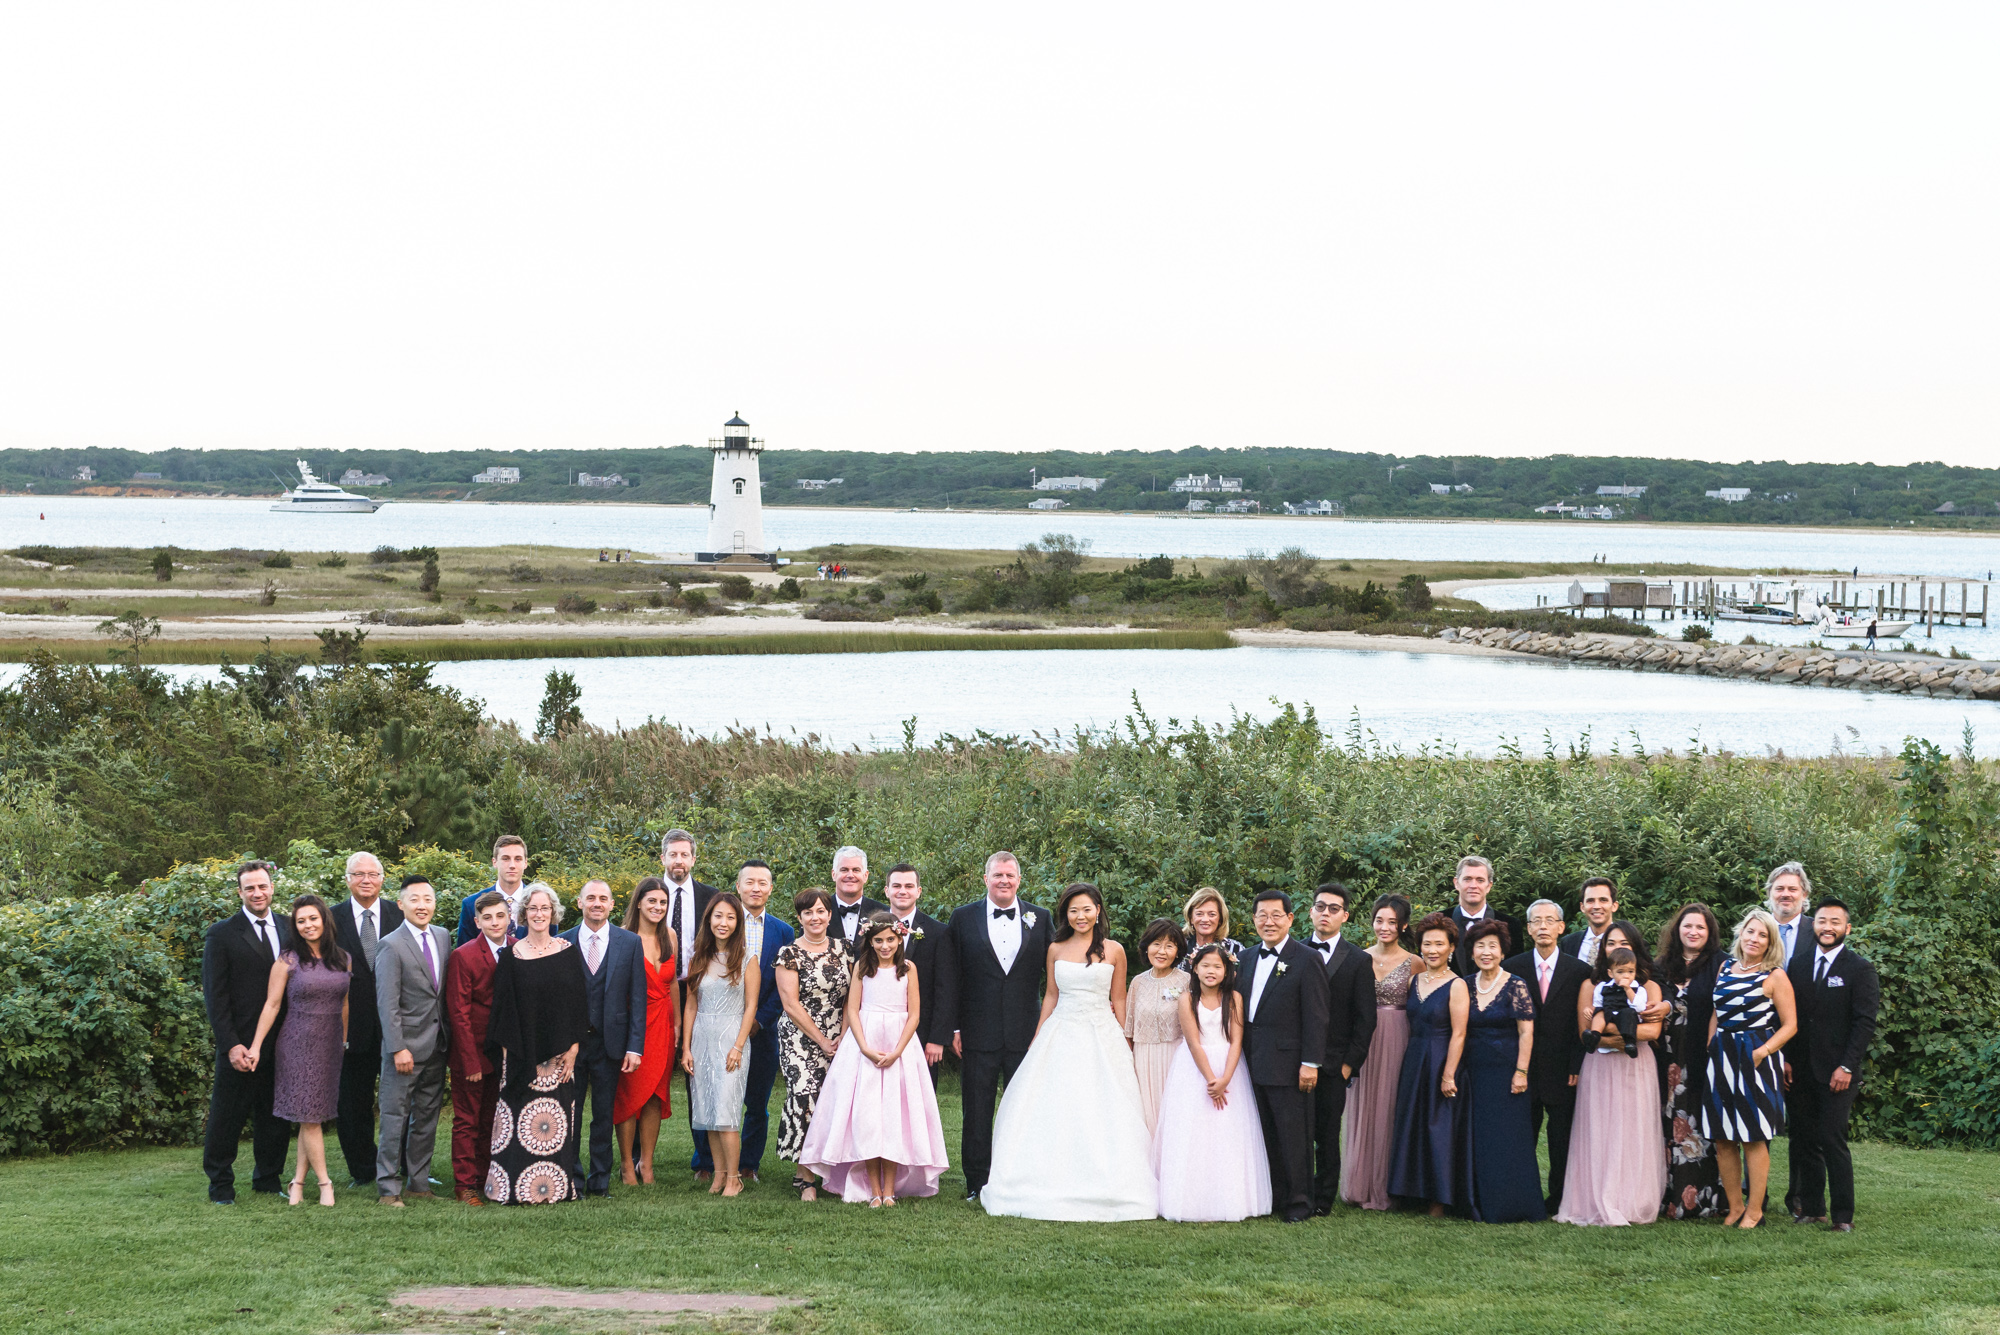 A group photo of a wedding party across the street from the Harbor View Hotel in Edgartown  photo by David Welch Photography